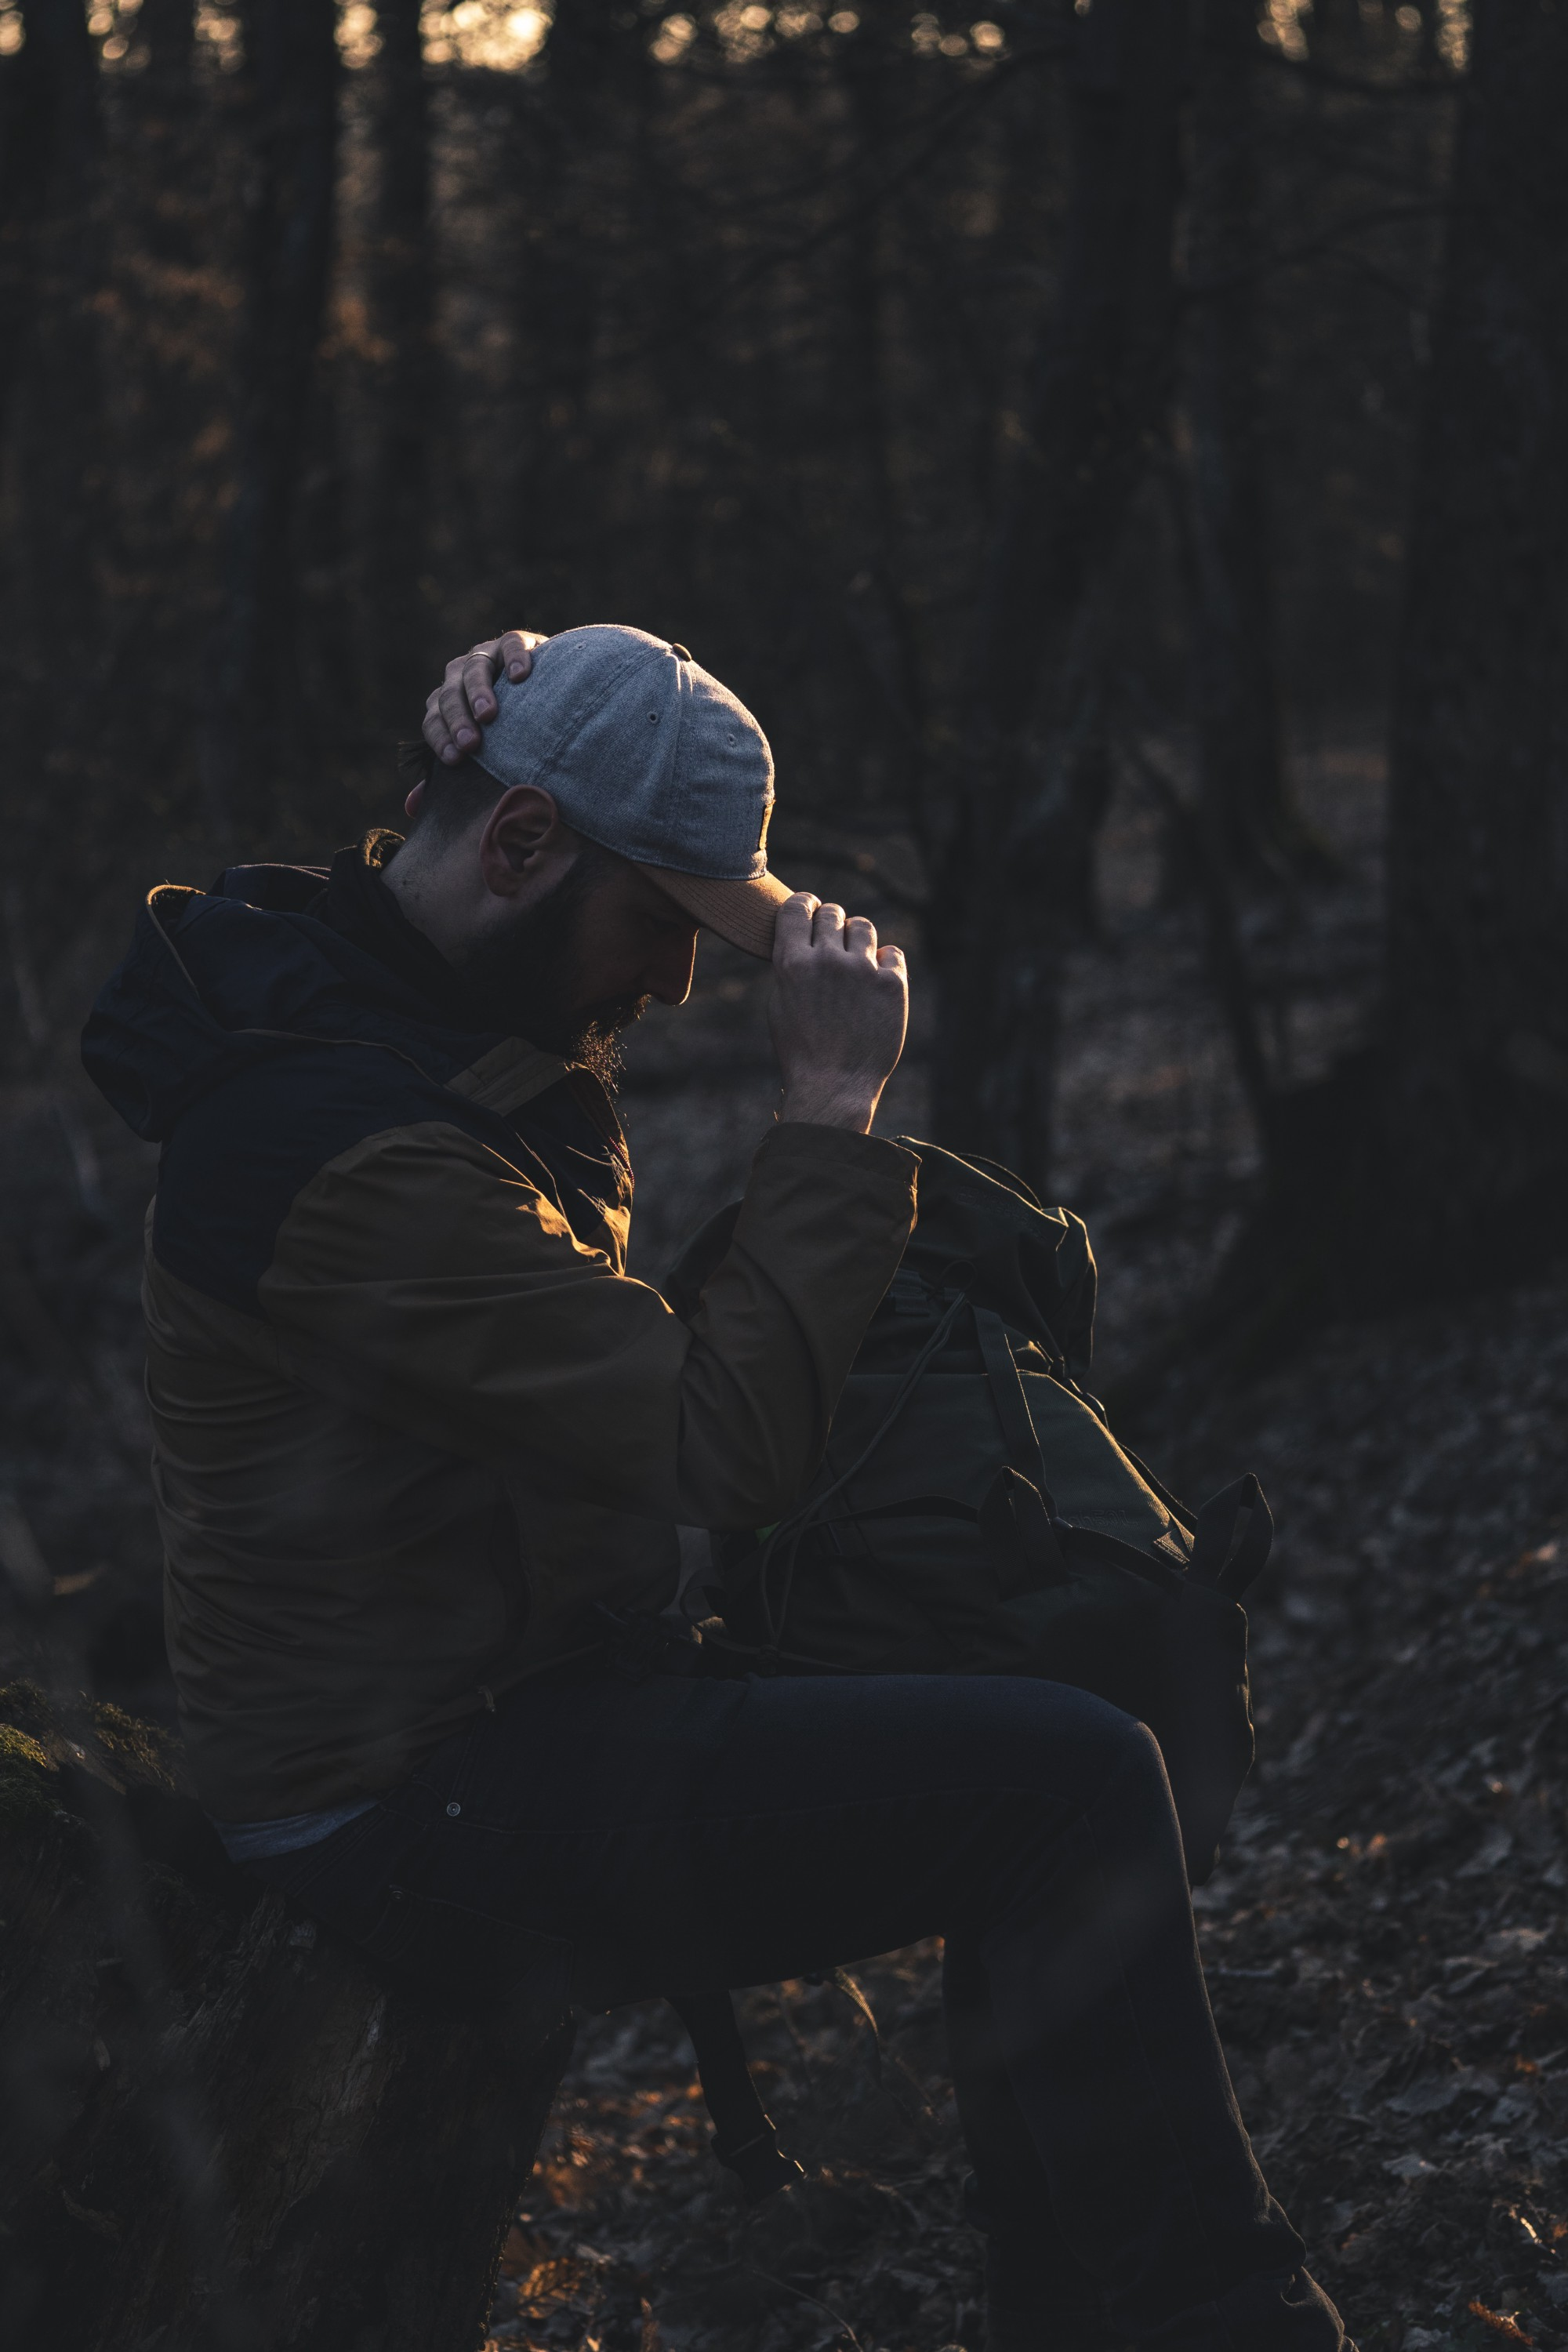 A man sitting in the woods with his head bowed. He is wearing a baseball cap.